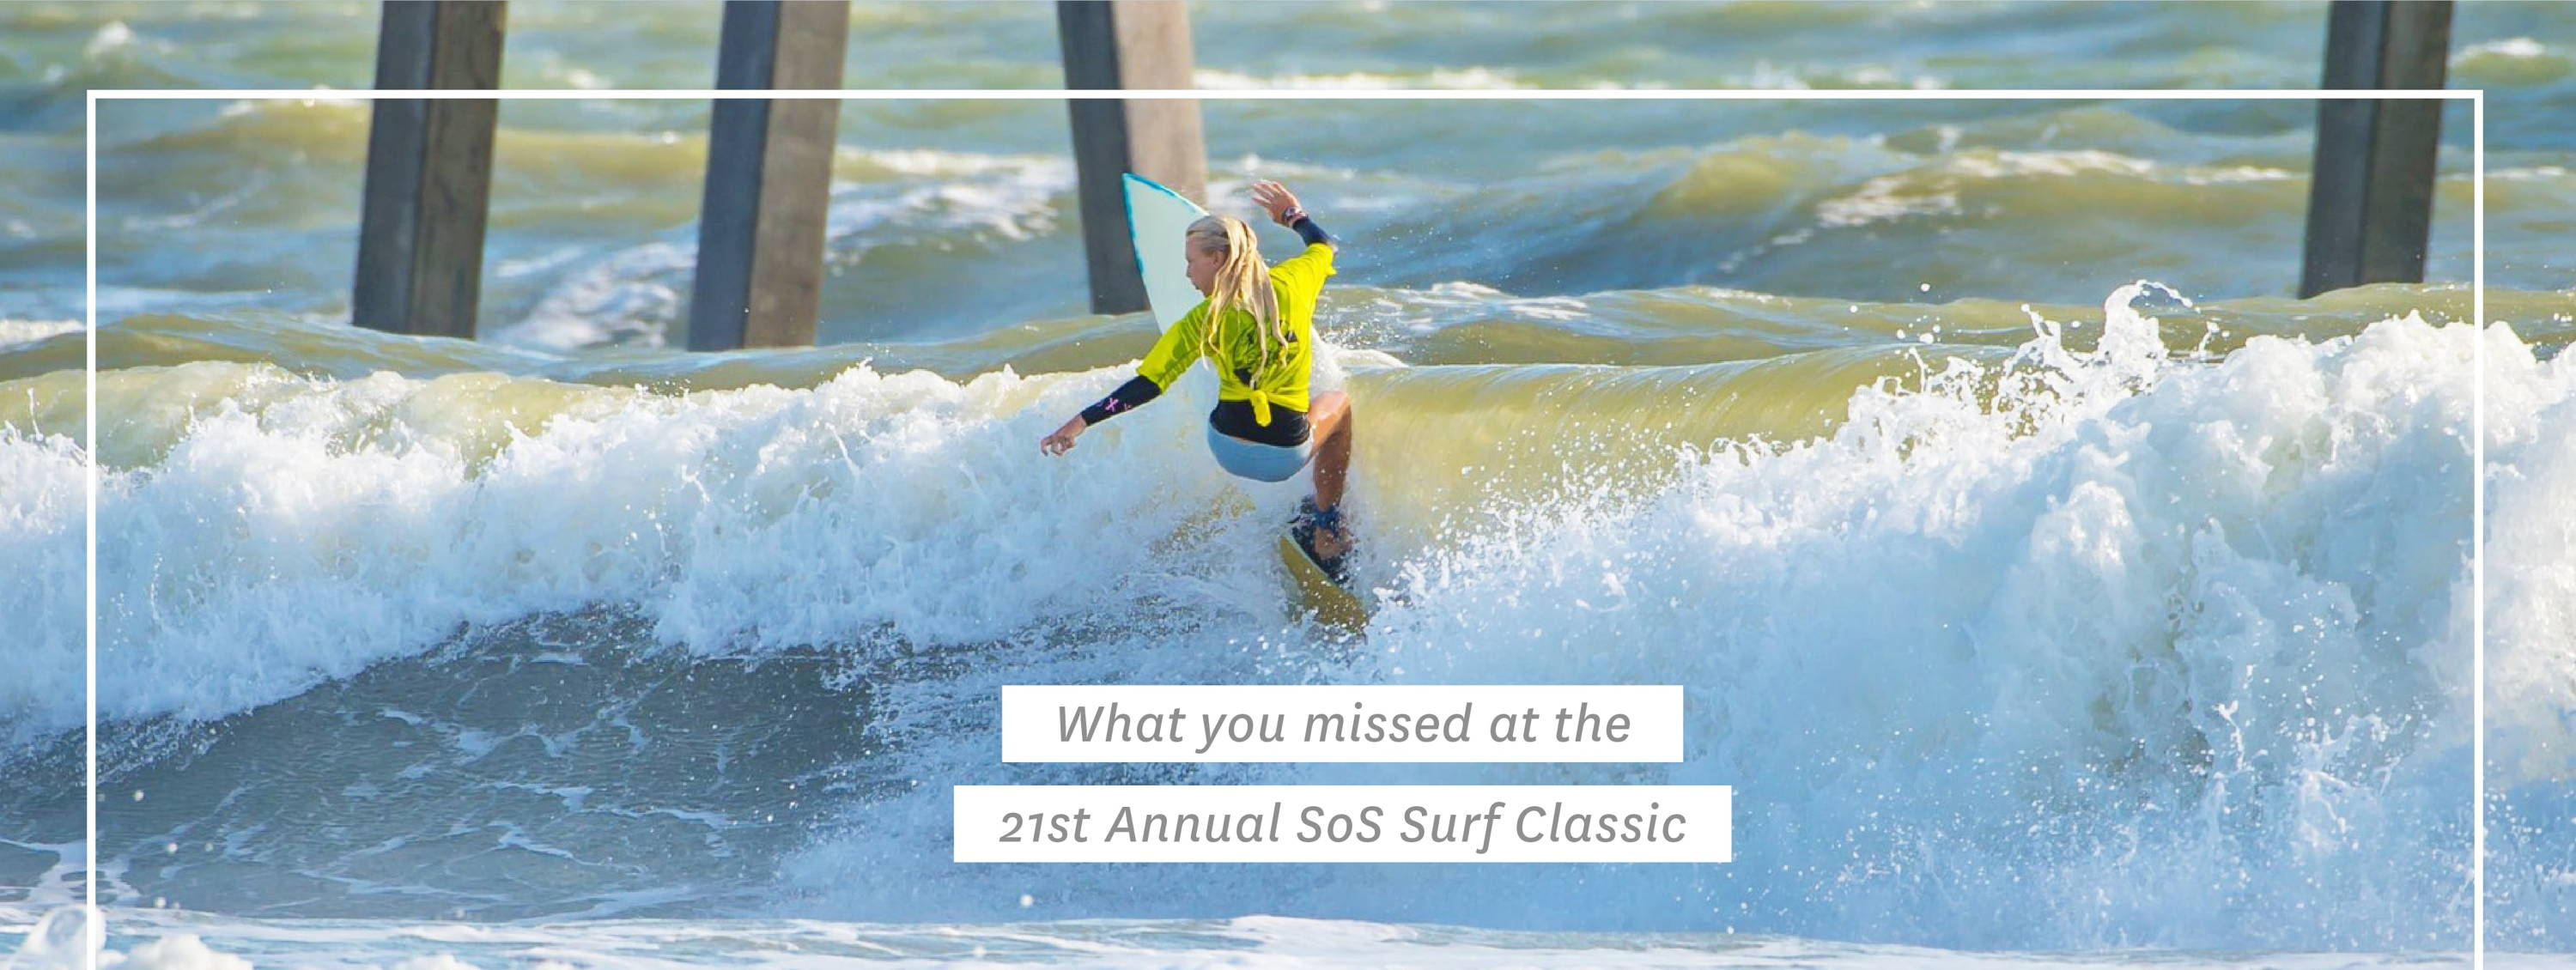 21st Annual SoS Surf Classic!